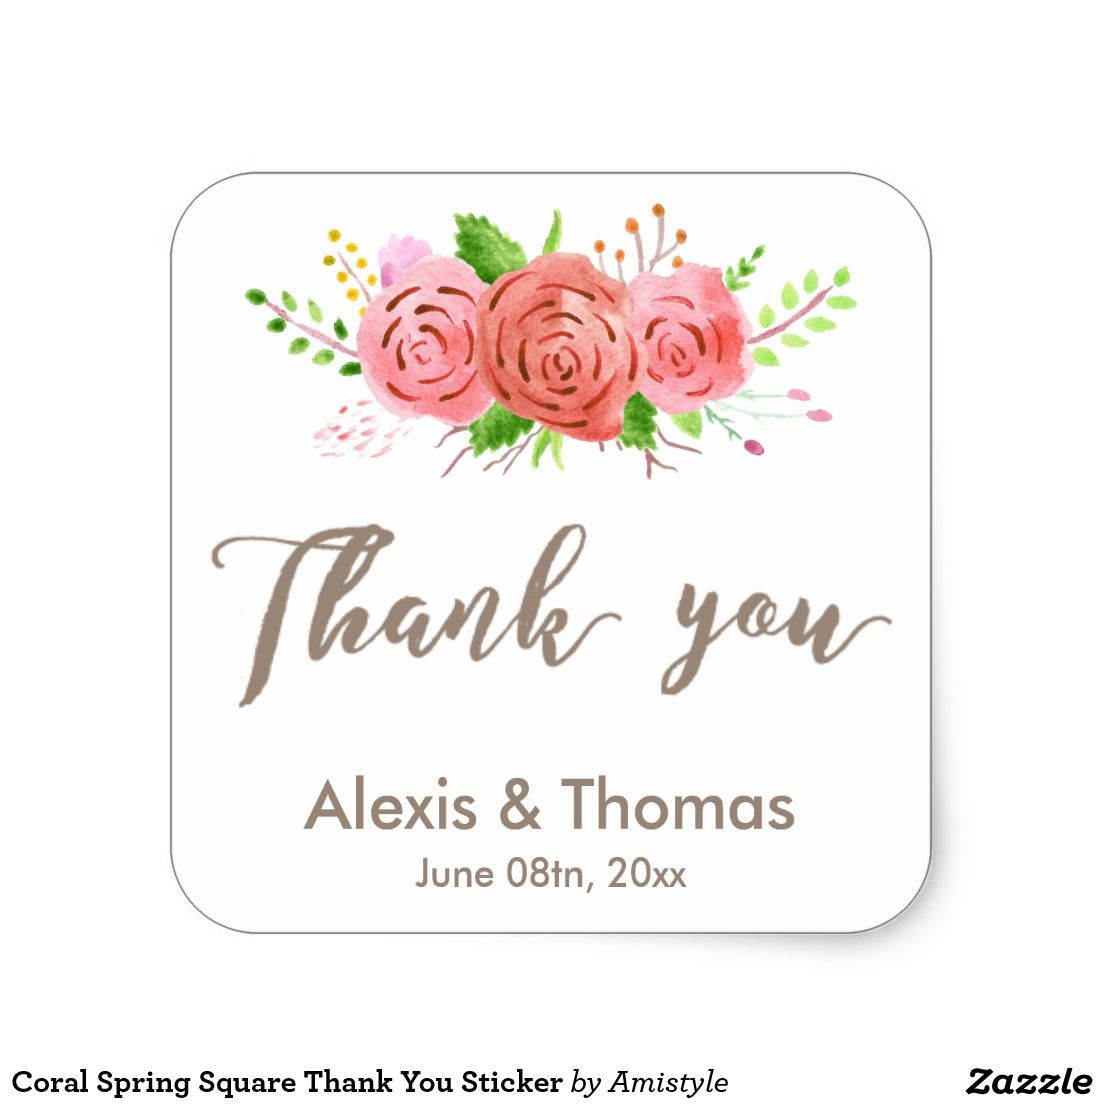 coral spring square thank you sticker | { wedding invitations